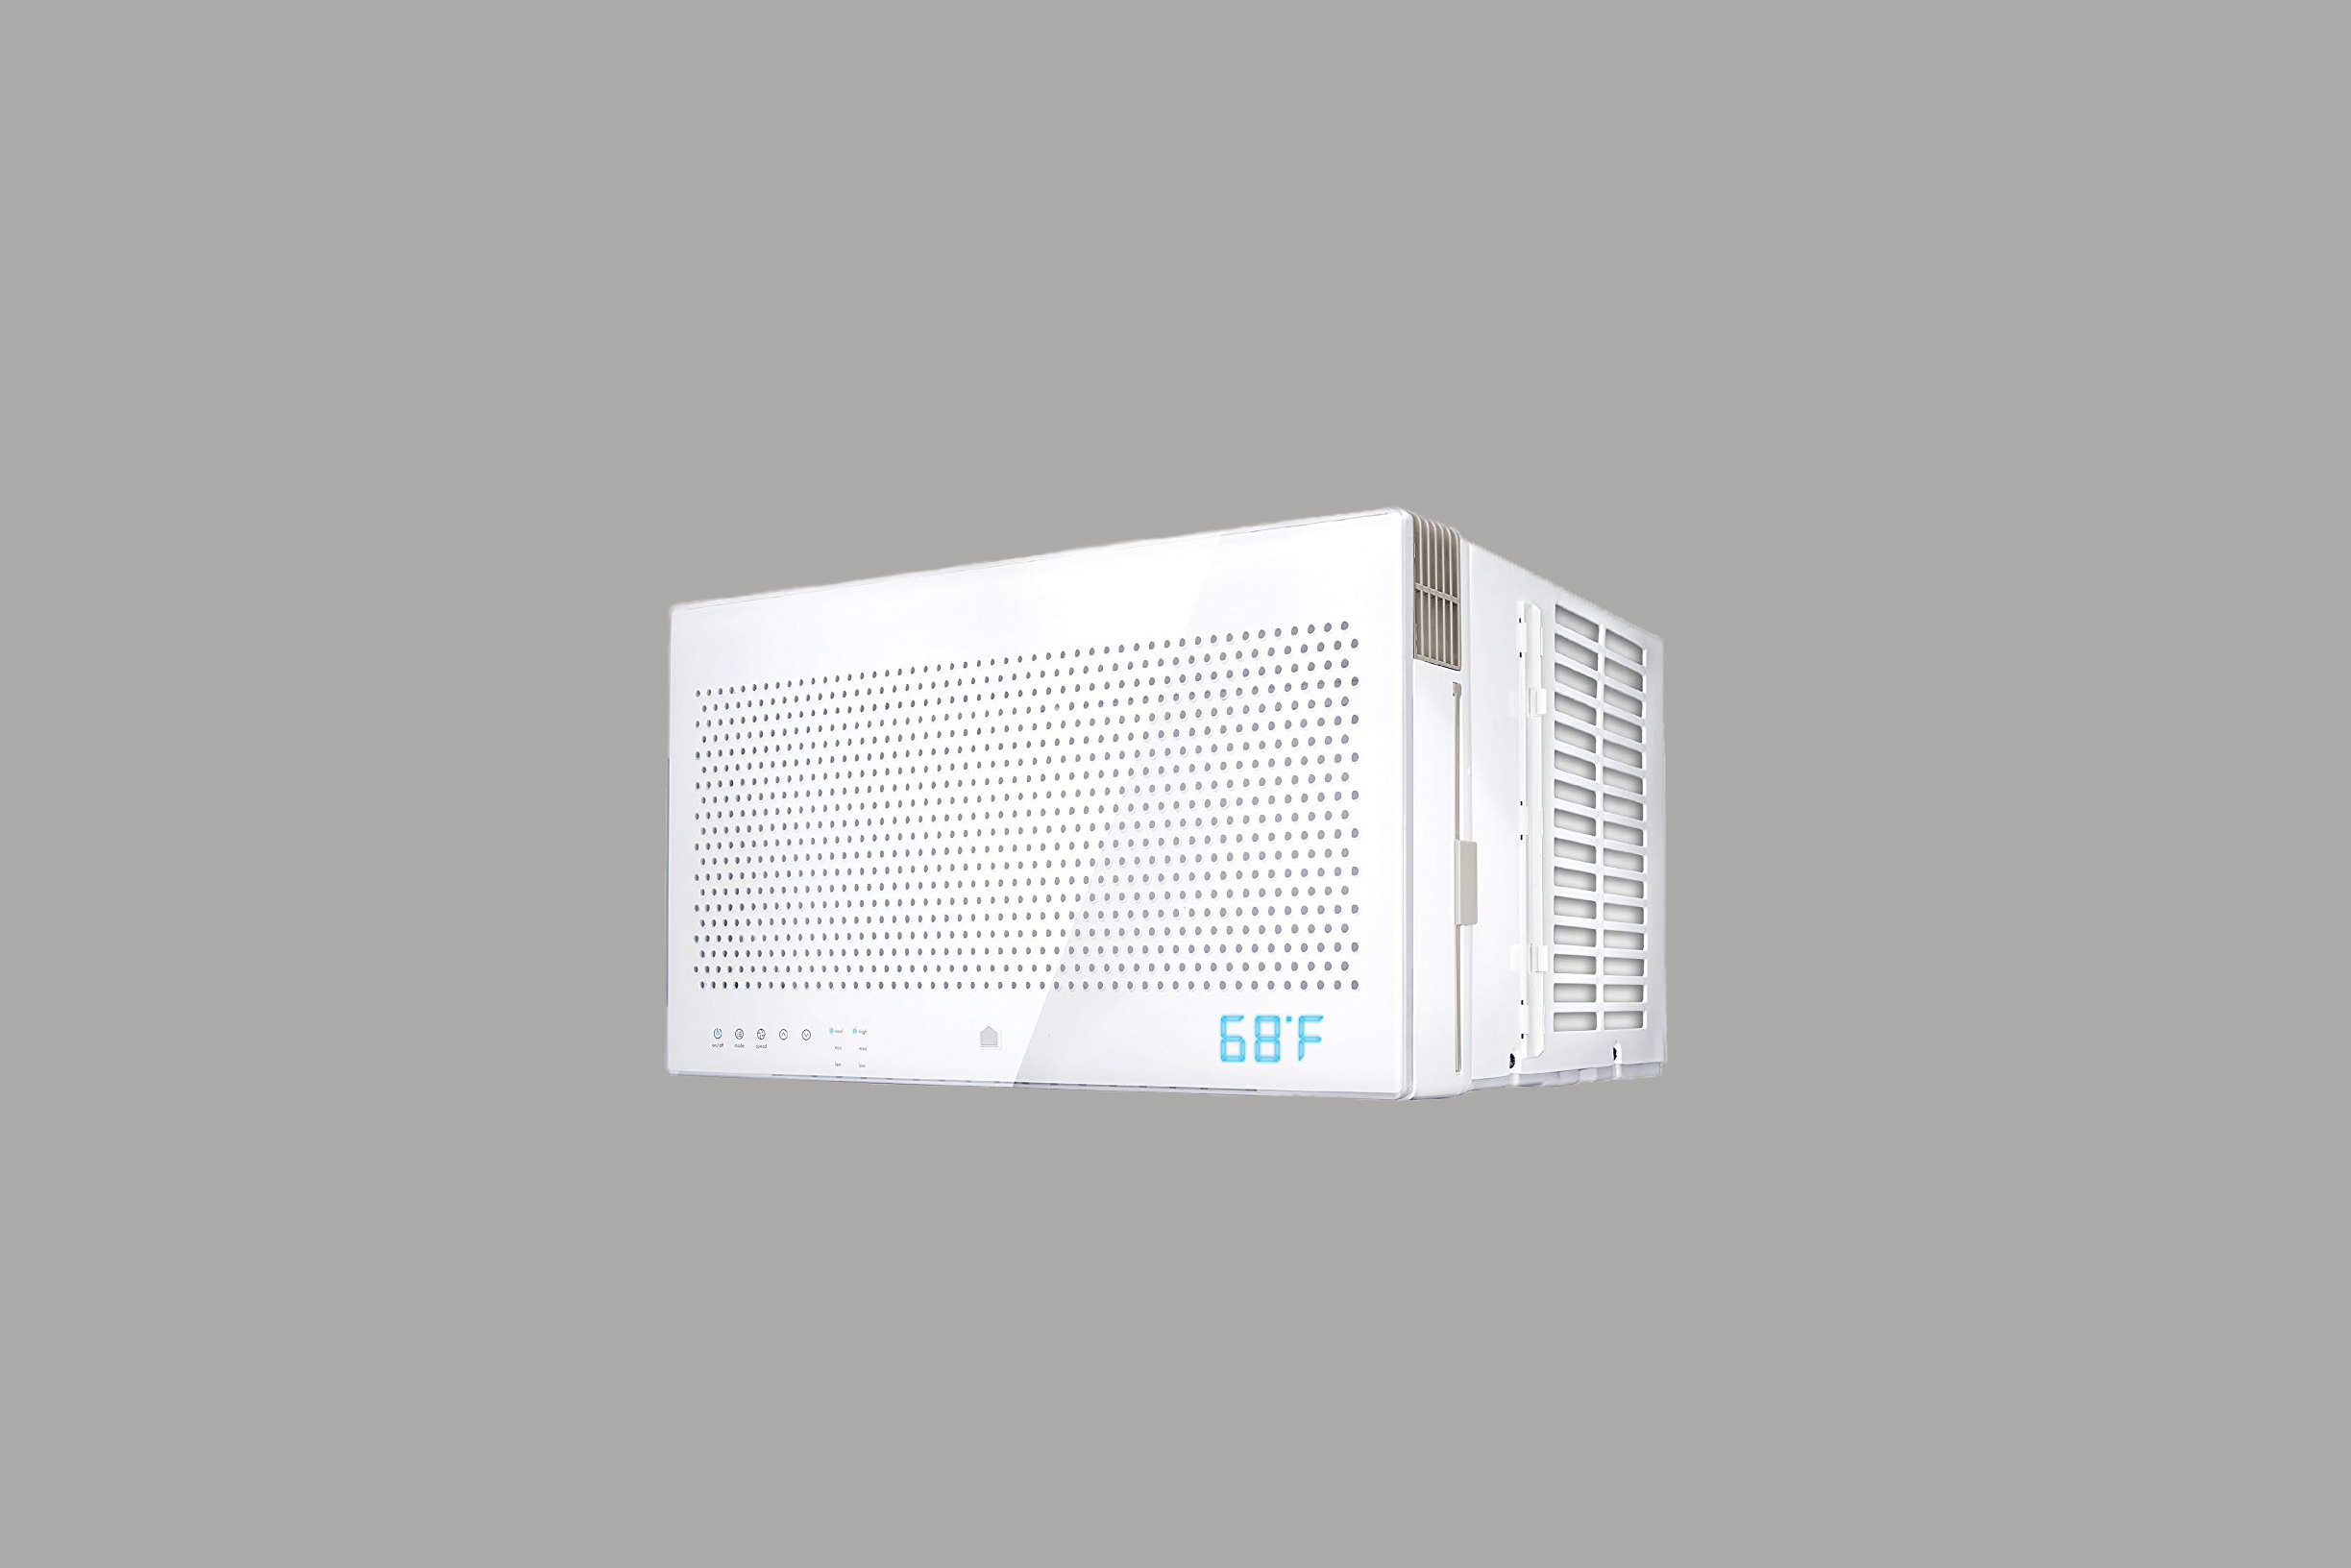 Quirky + GE Aros Smart Window Air Conditioner